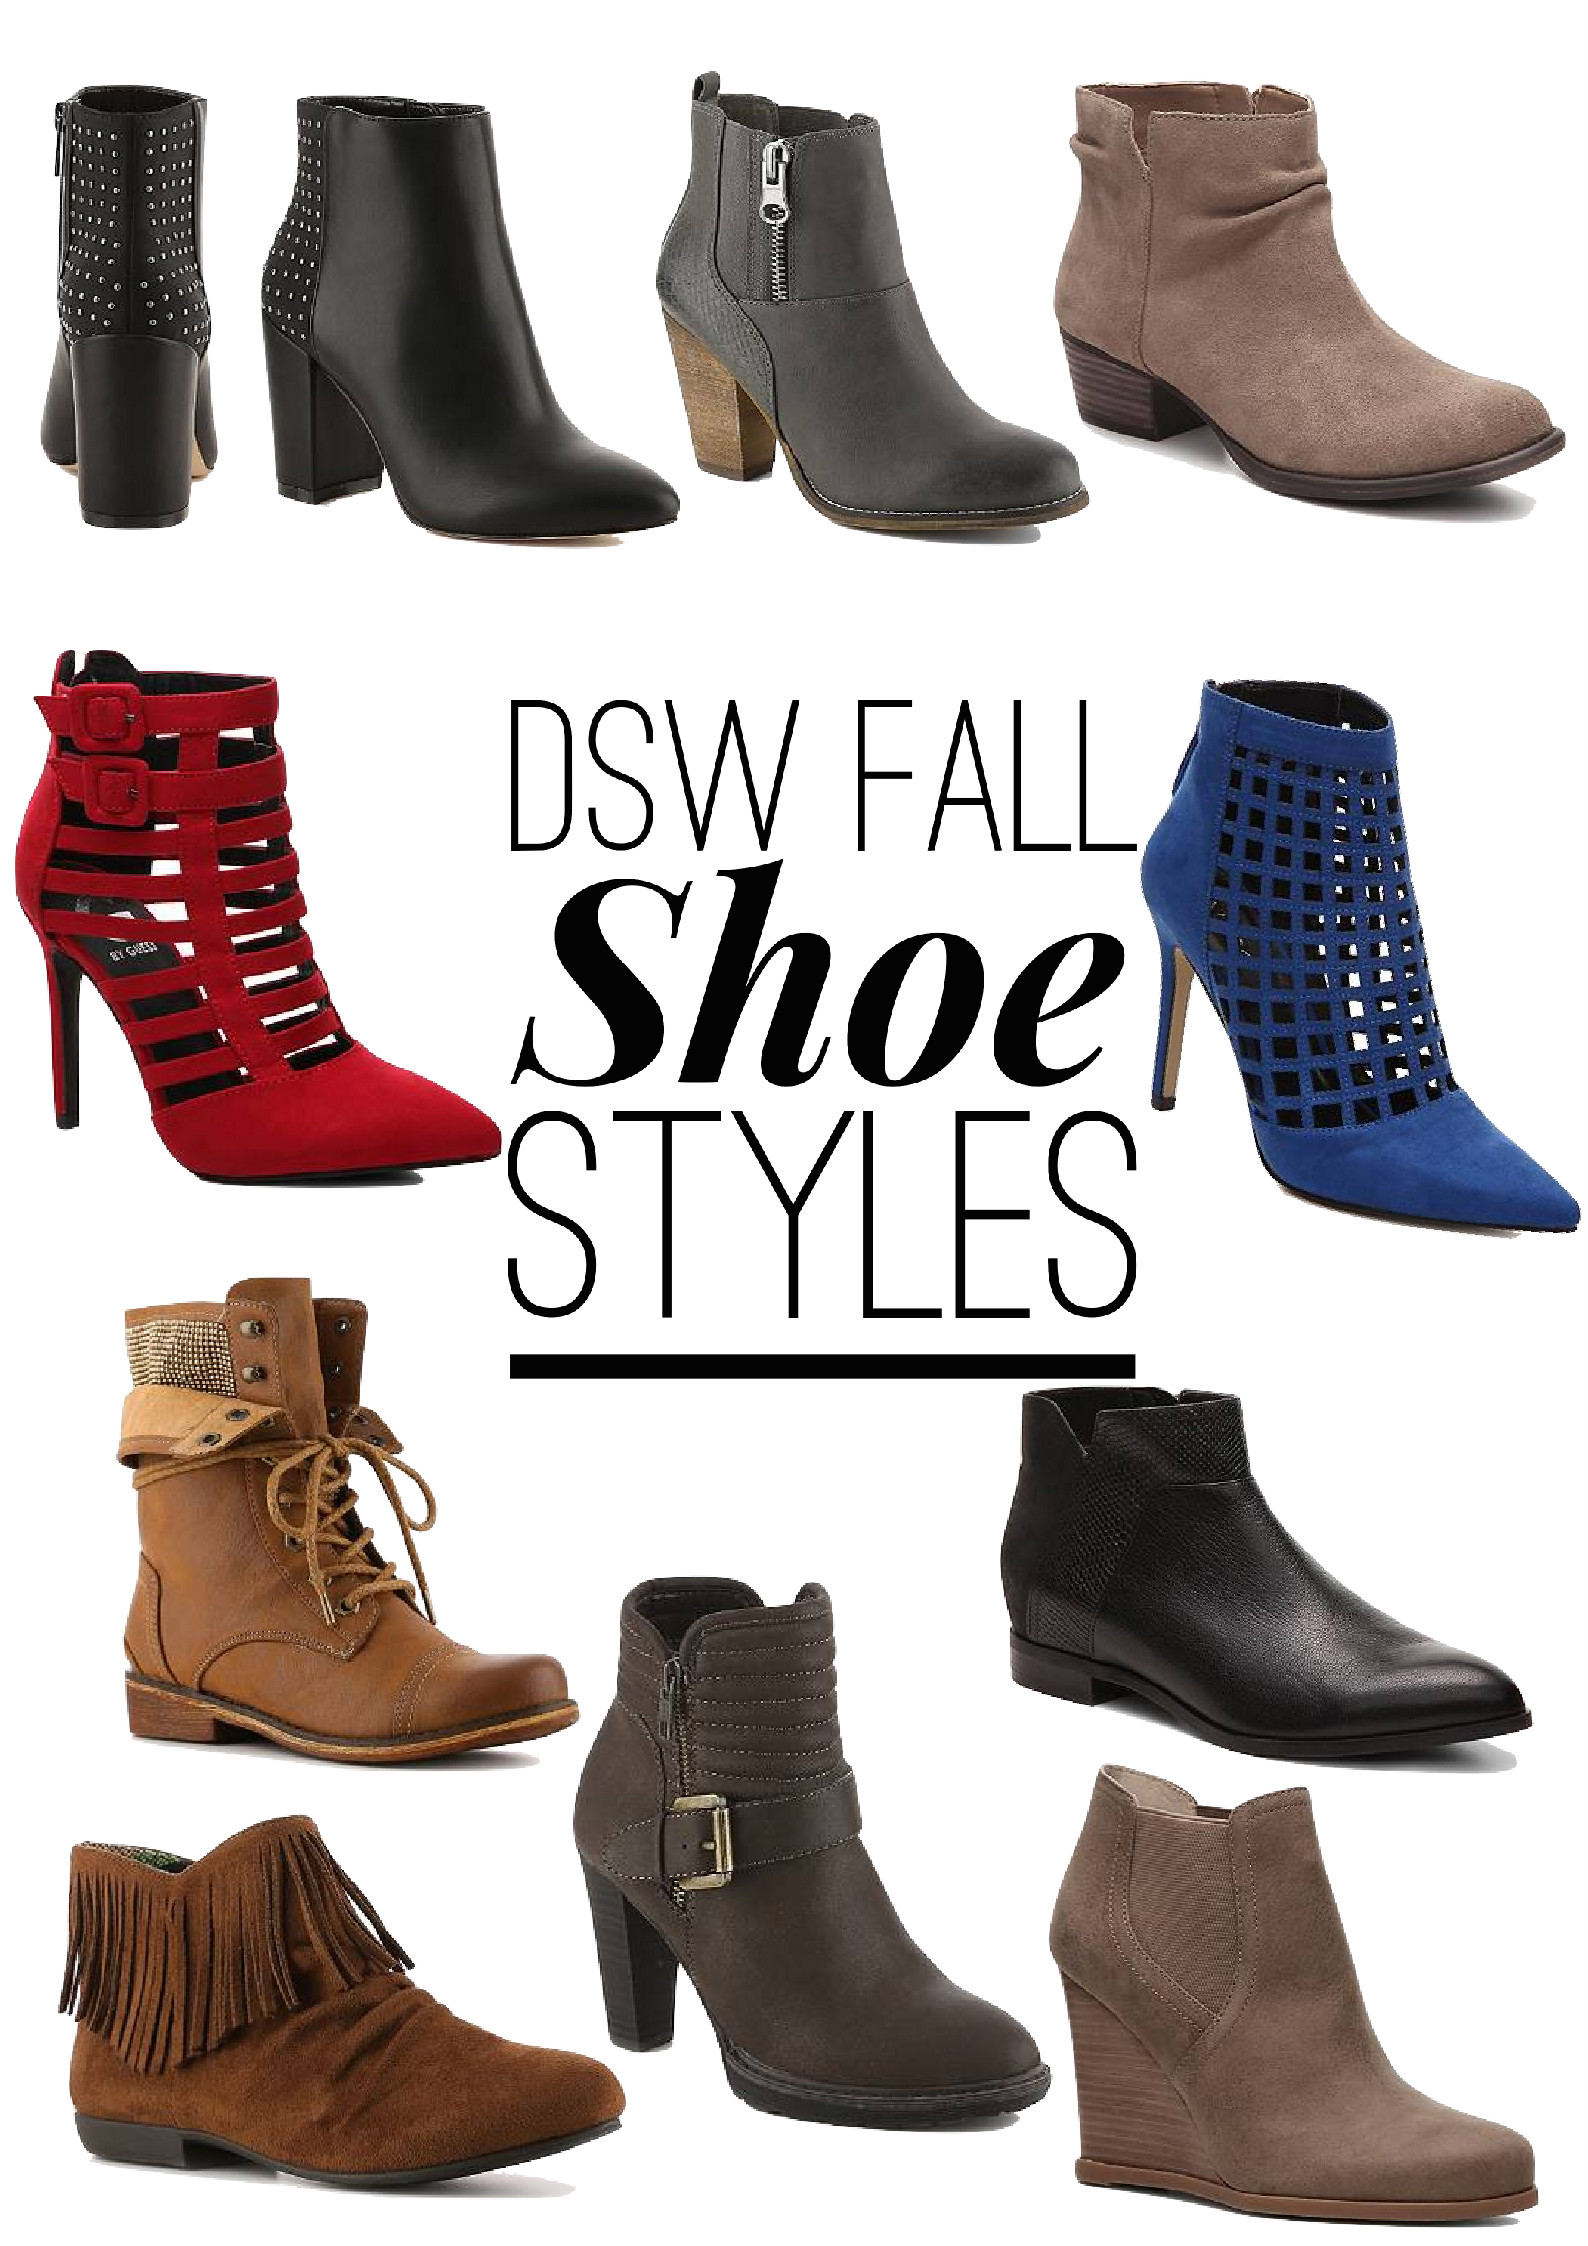 Dsw - One Pair Of Booties Three Ways With Dsw Shoes